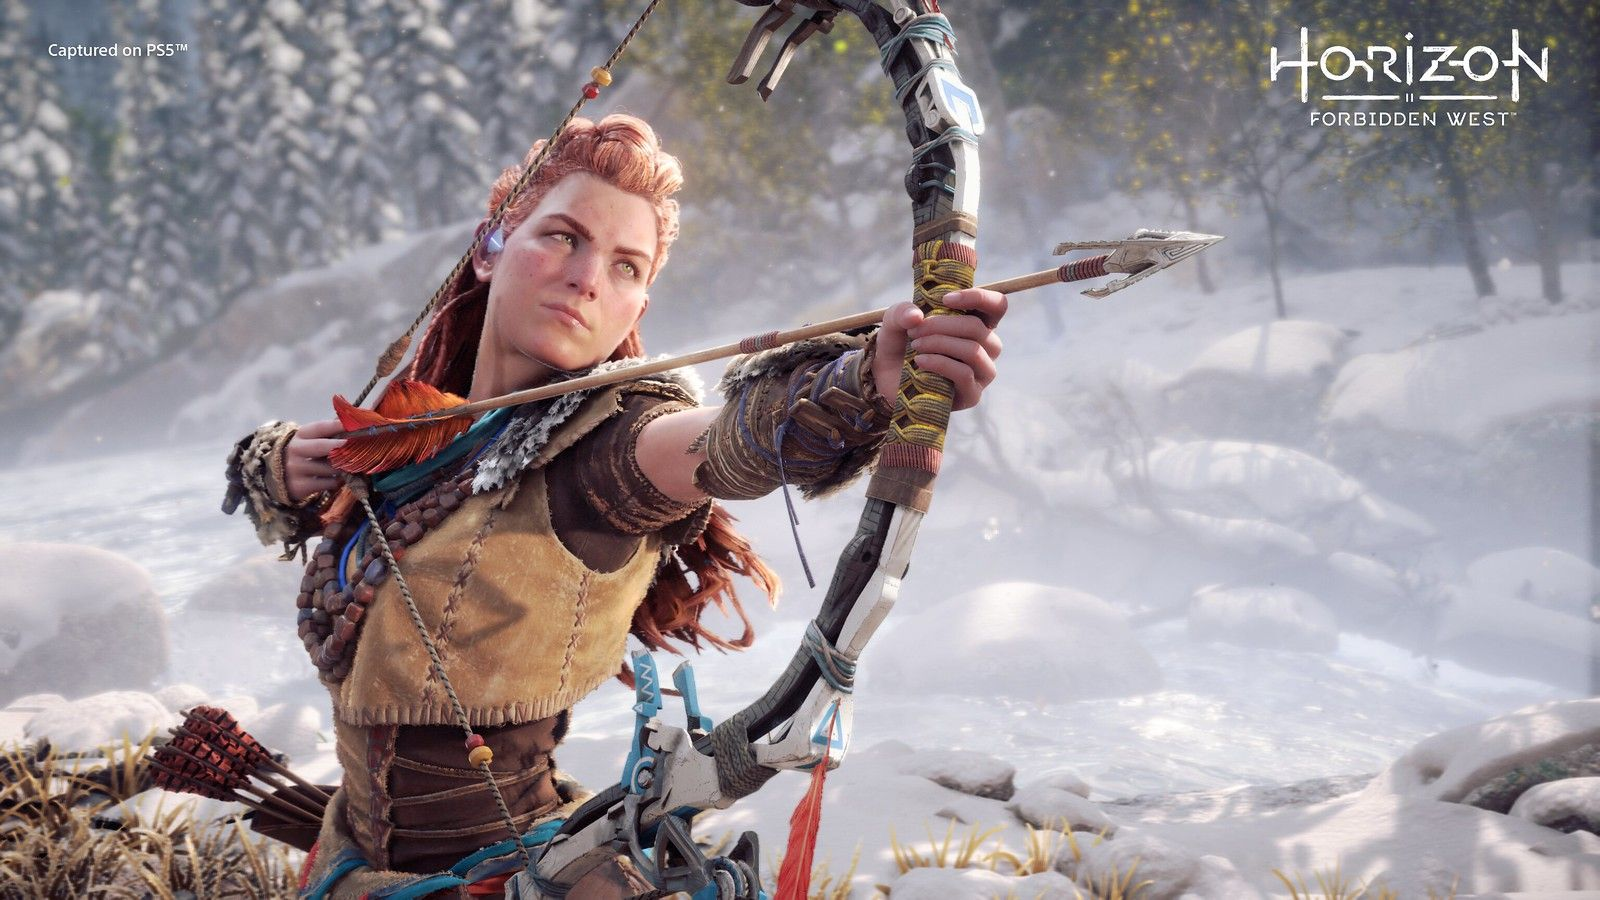 10 hot games for Playstation 5 to look forward to